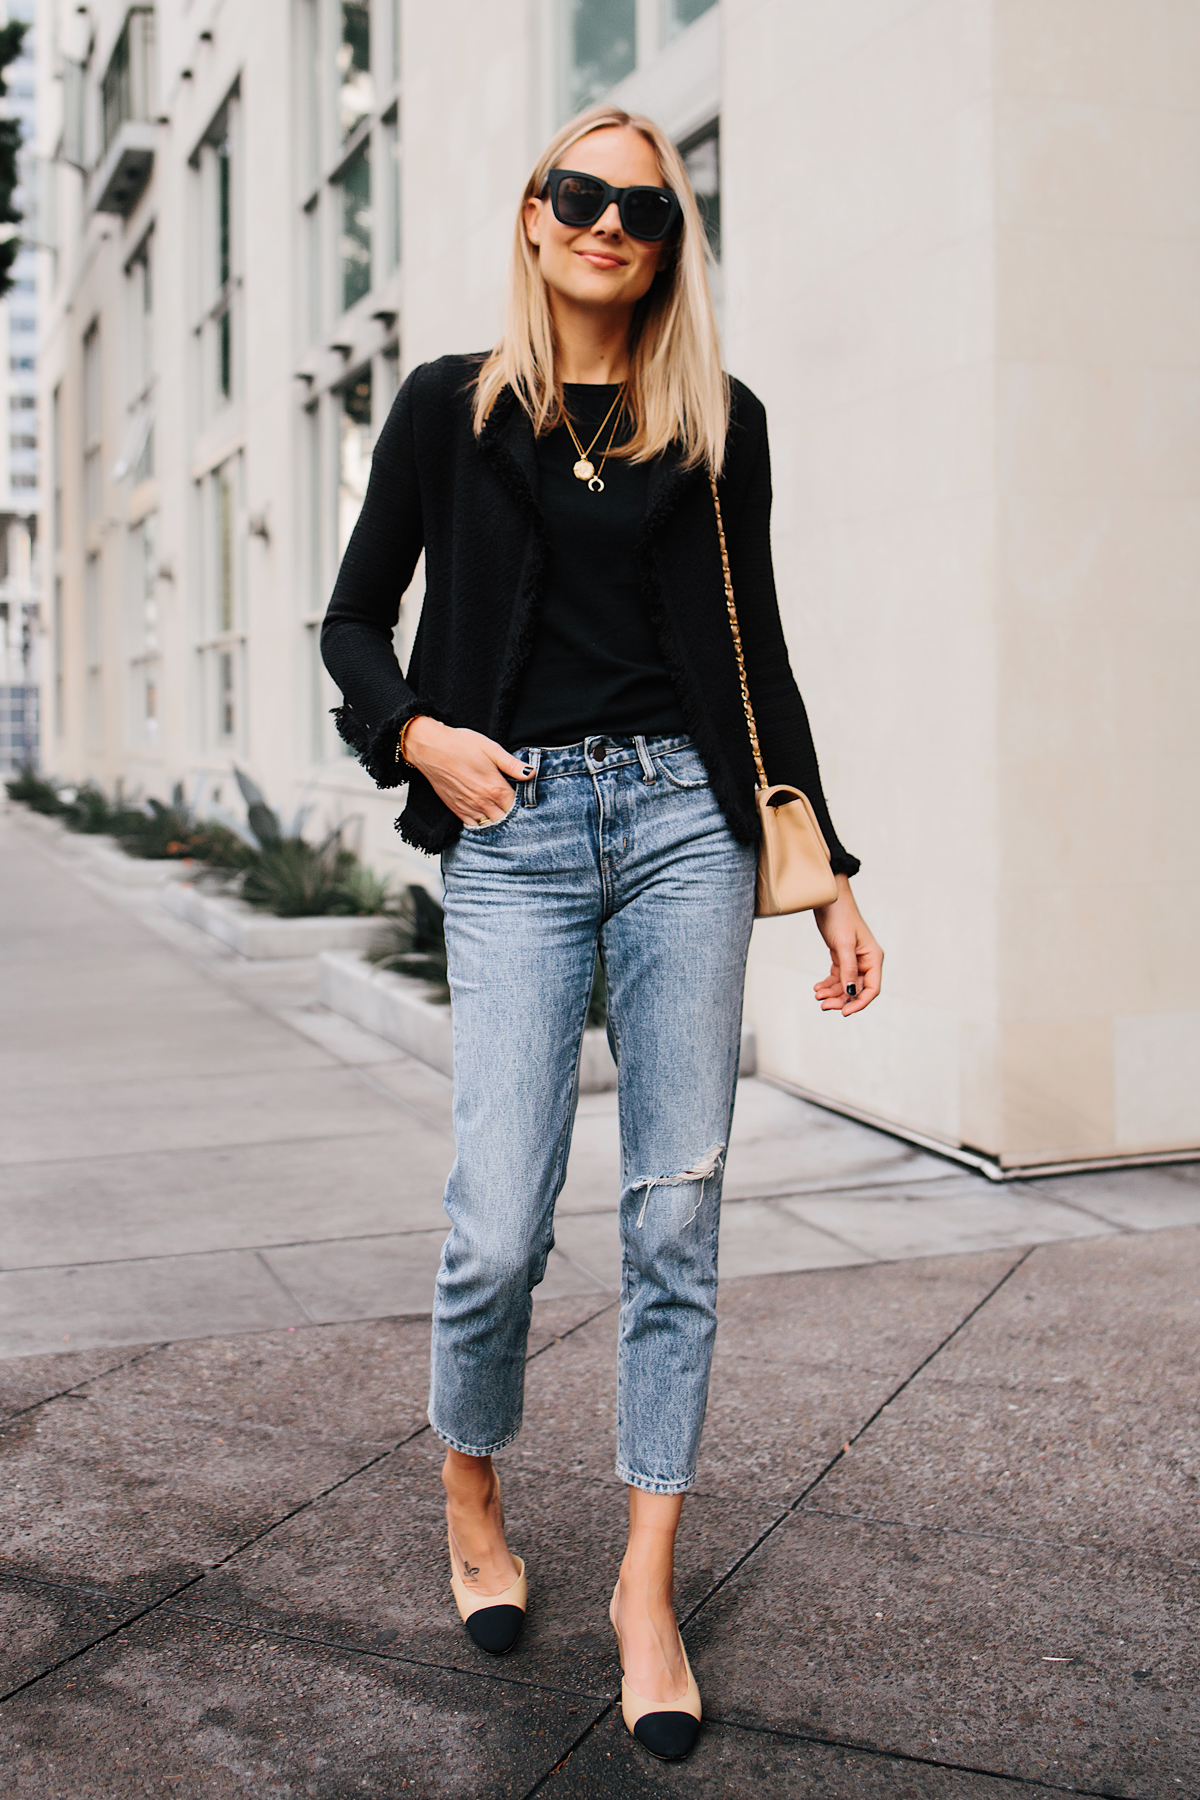 Blonde Woman Wearing Black Tweed Relaxed Jacket Jeans Outfit Chanel Tan Diana Handbag Chanel Slingback Shoes Fashion Jackson San Diego Fashion Blogger Street Style